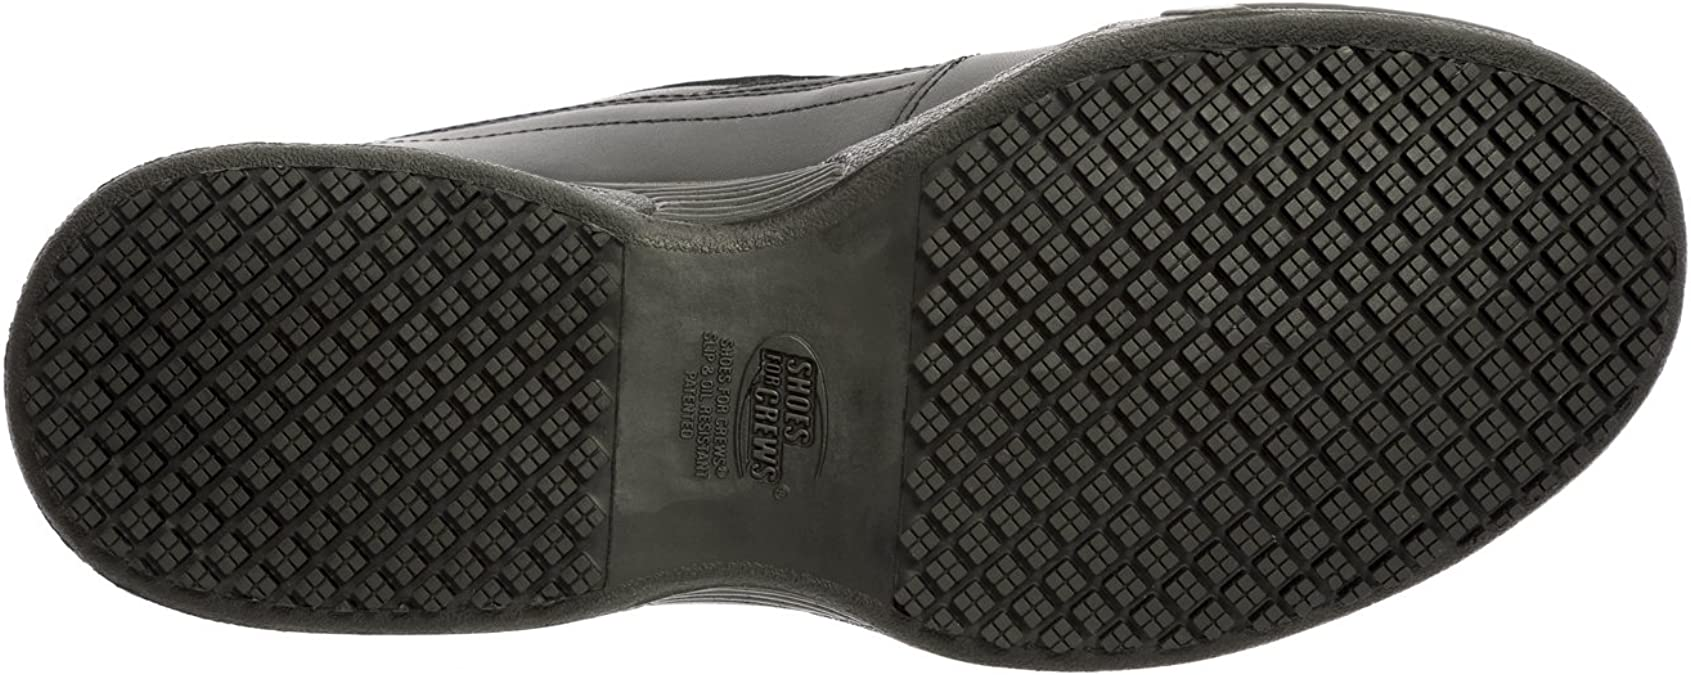 Shoes for Crews womens 7007 Falcon